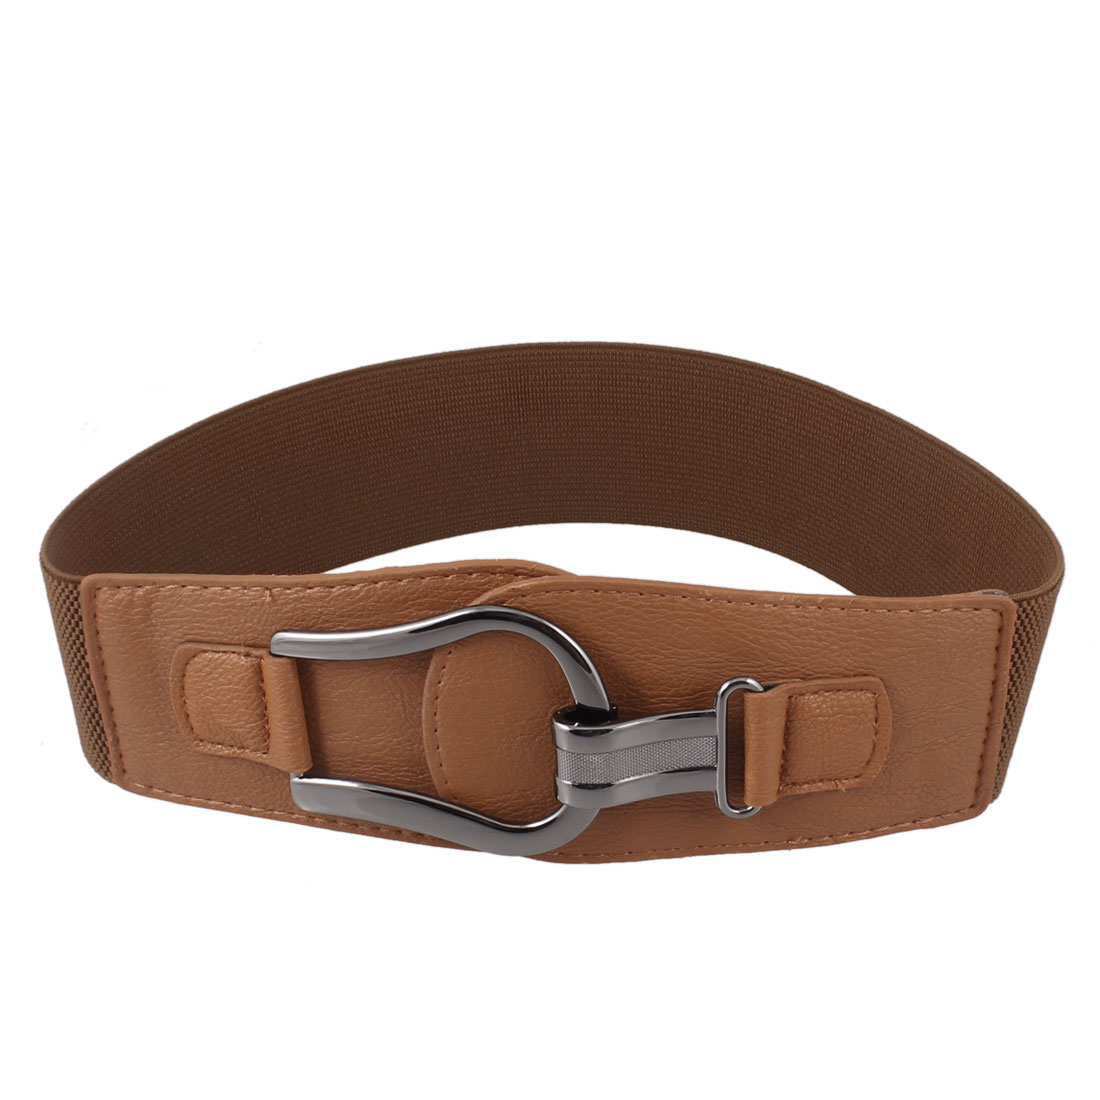 Lady Woman Gray Hook Shape Faux Leather Stretchy Waistband Belt Brown